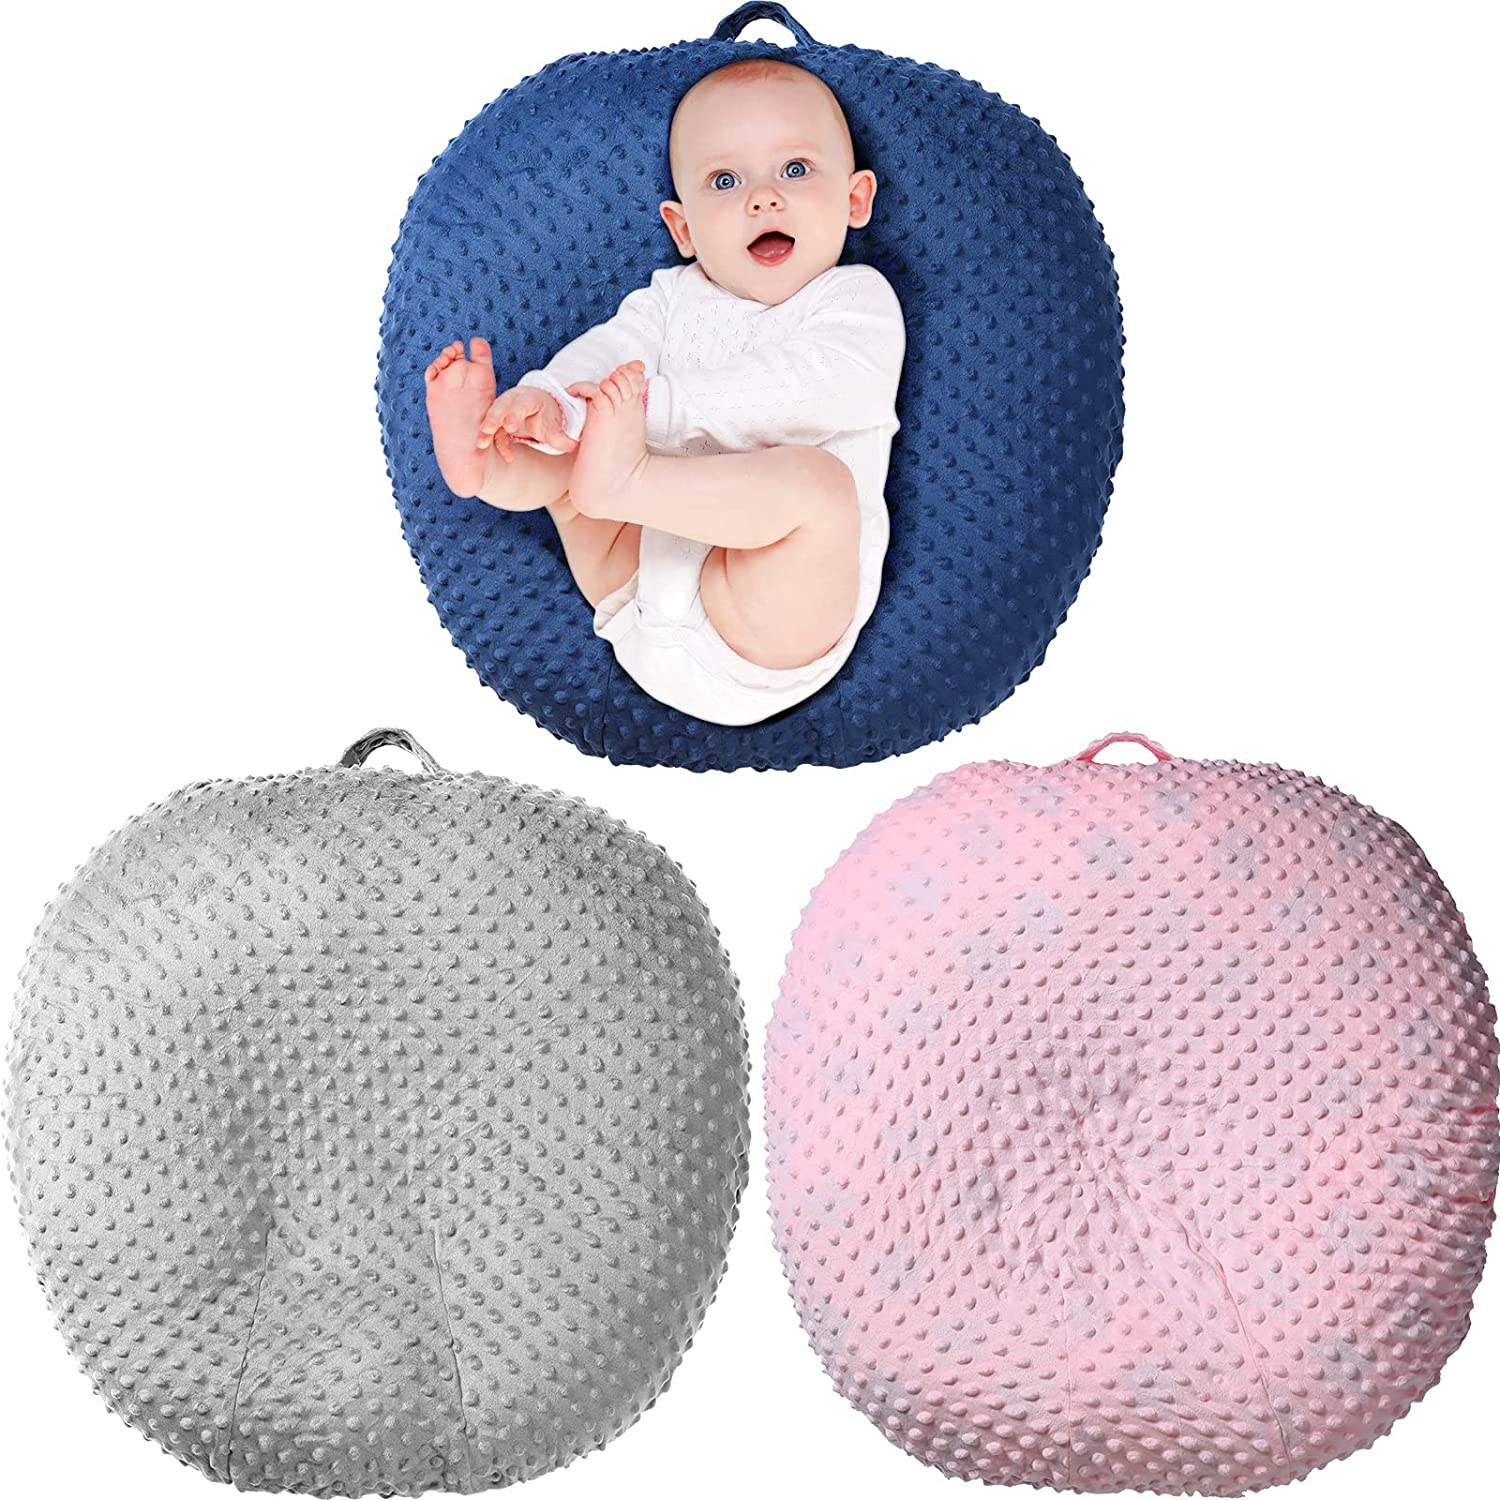 3 Pieces Newborn Lounger Cover Soft Infant Lounger Slipcover Baby Lounger Pillow Cover Removable Infant Lounger Pillow Case for Boys and Girls